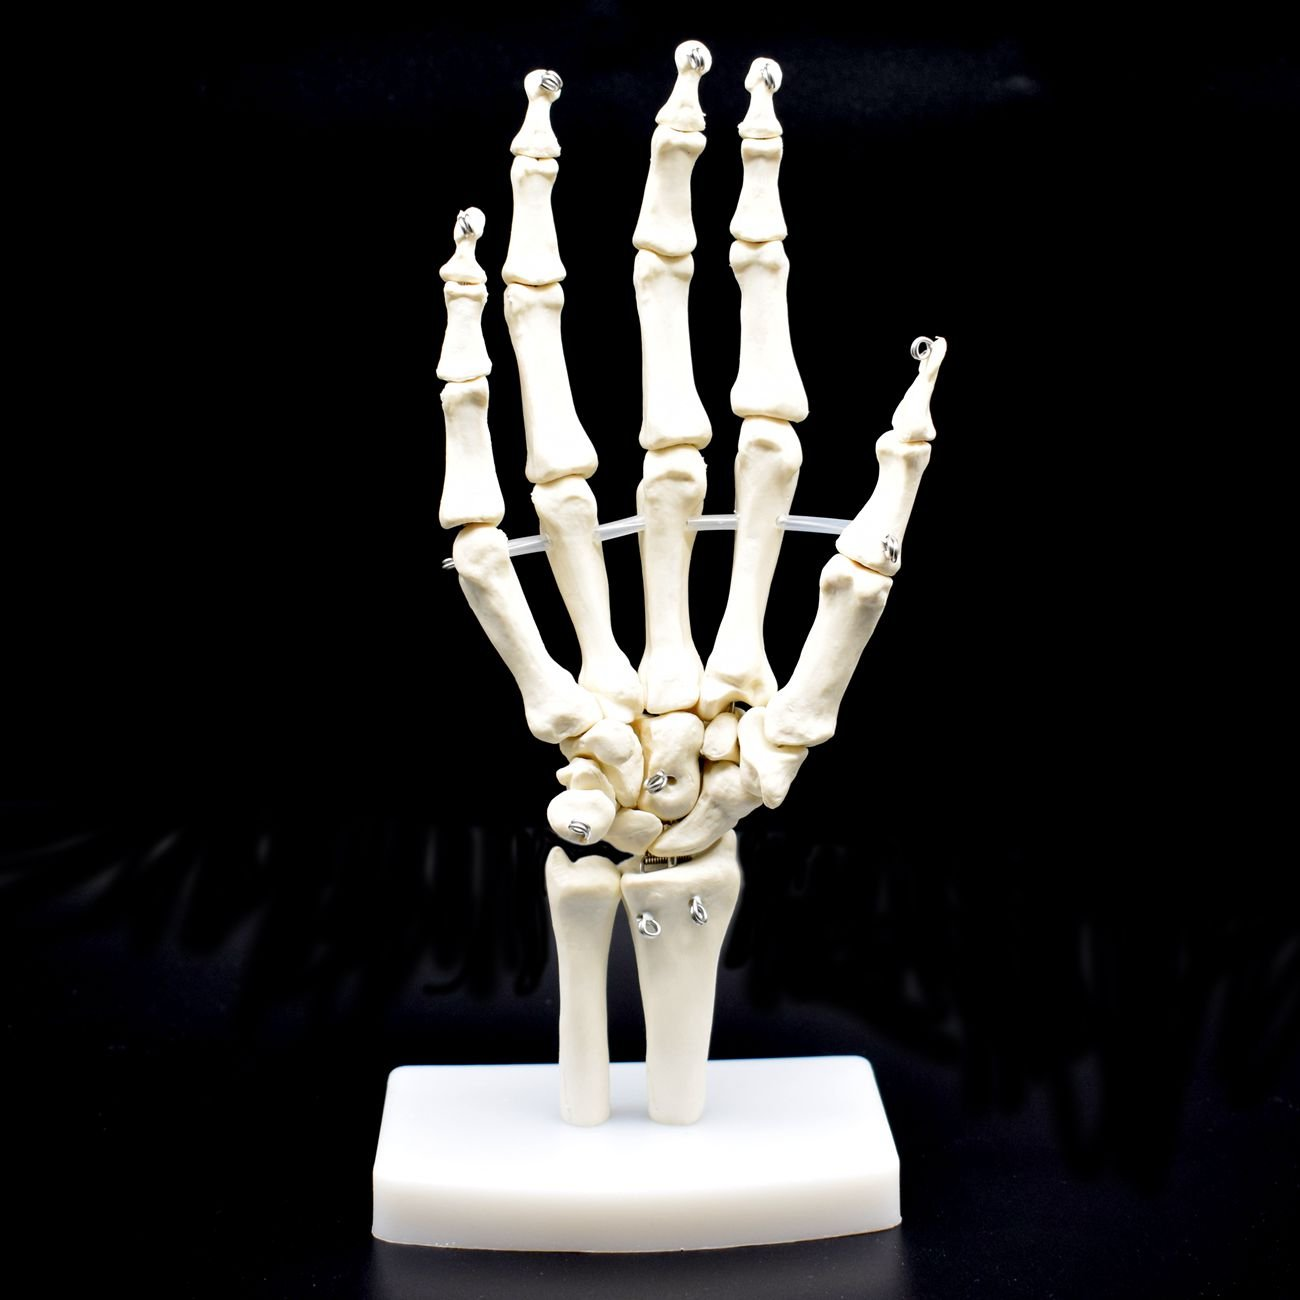 Human Hand Skeleton Model on Base, Hand Bone,Life Size, Articulated shawn science